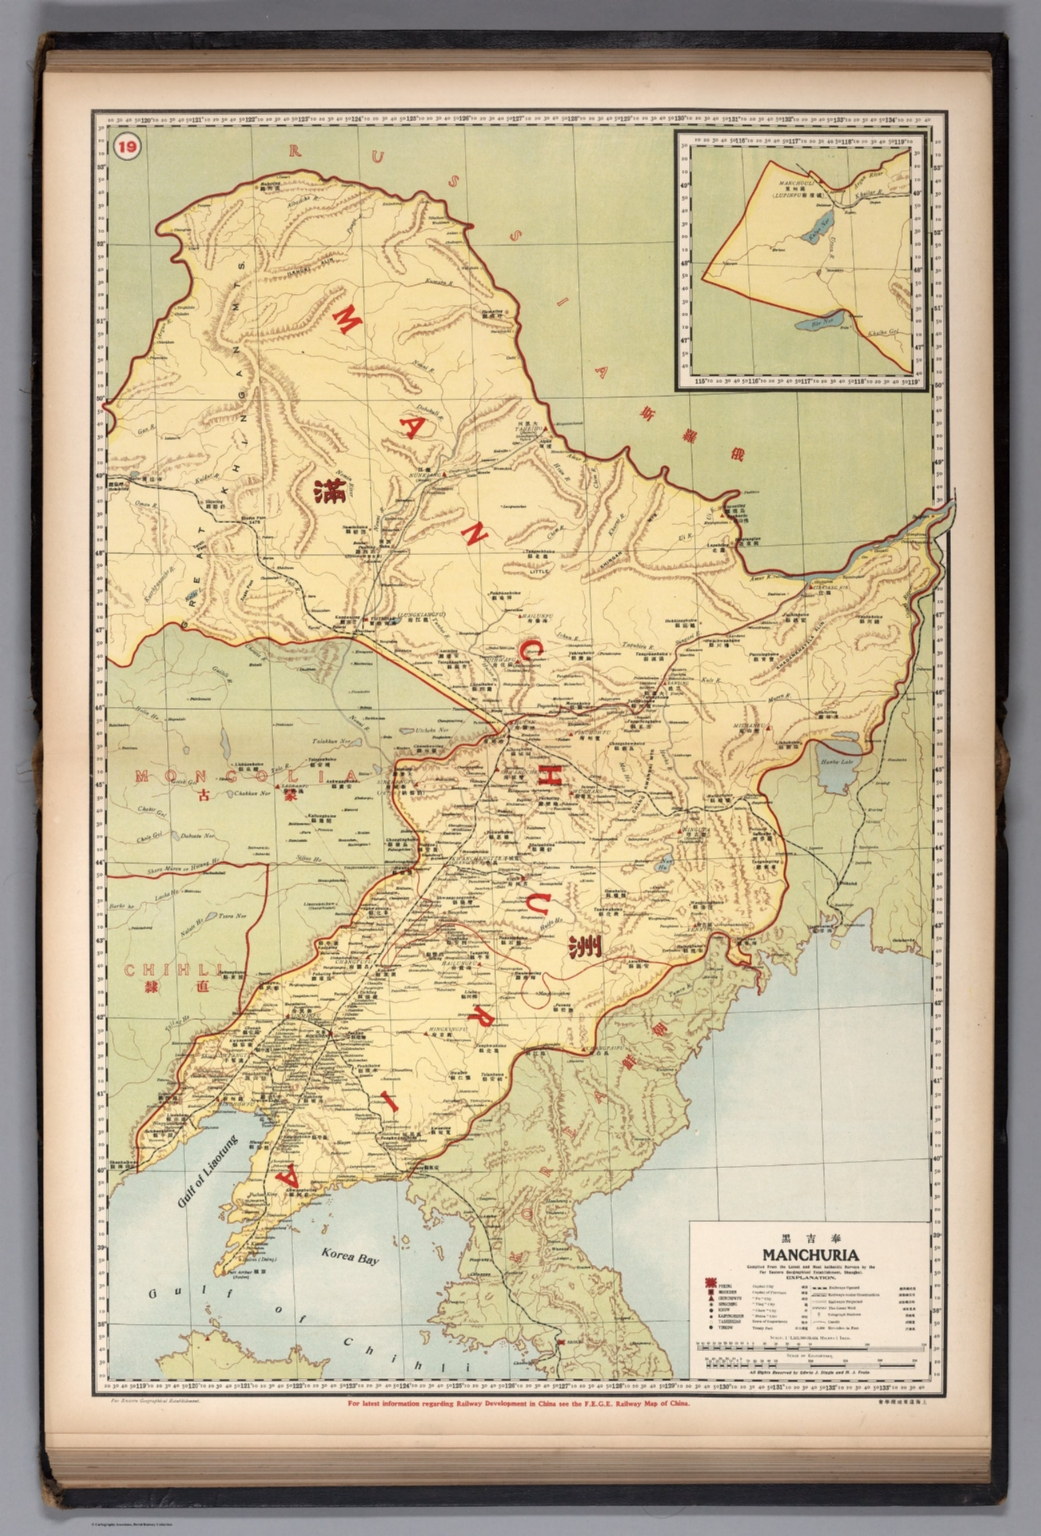 19. Manchuria, China. - David Rumsey Historical Map Collection on persia map, nanking massacre, hainan map, sweden map, empire of japan, russo-japanese war, kazakhstan map, gobi desert map, new guinea map, shenyang map, austria map, asia map, great wall of china, second sino-japanese war, beijing map, first sino-japanese war, ming dynasty, inner mongolia, formosa map, china map, pakistan map, xinjiang map, sakhalin map, pearl harbor map, abyssinia map, angola map, qing dynasty, great wall map, japanese invasion of manchuria, nicaragua map,